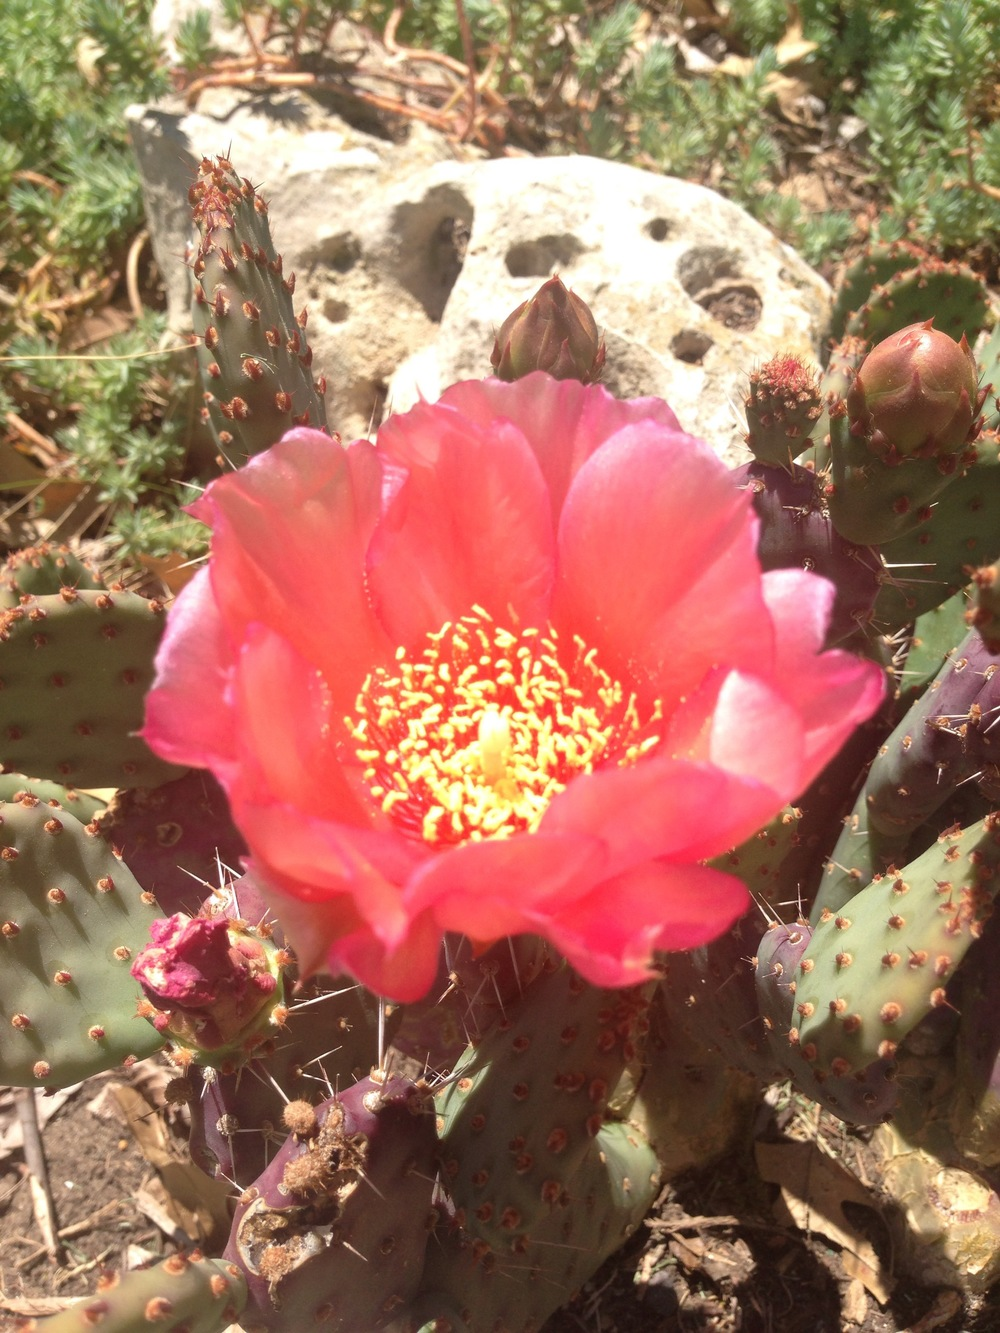 cactus in bloom at the studio